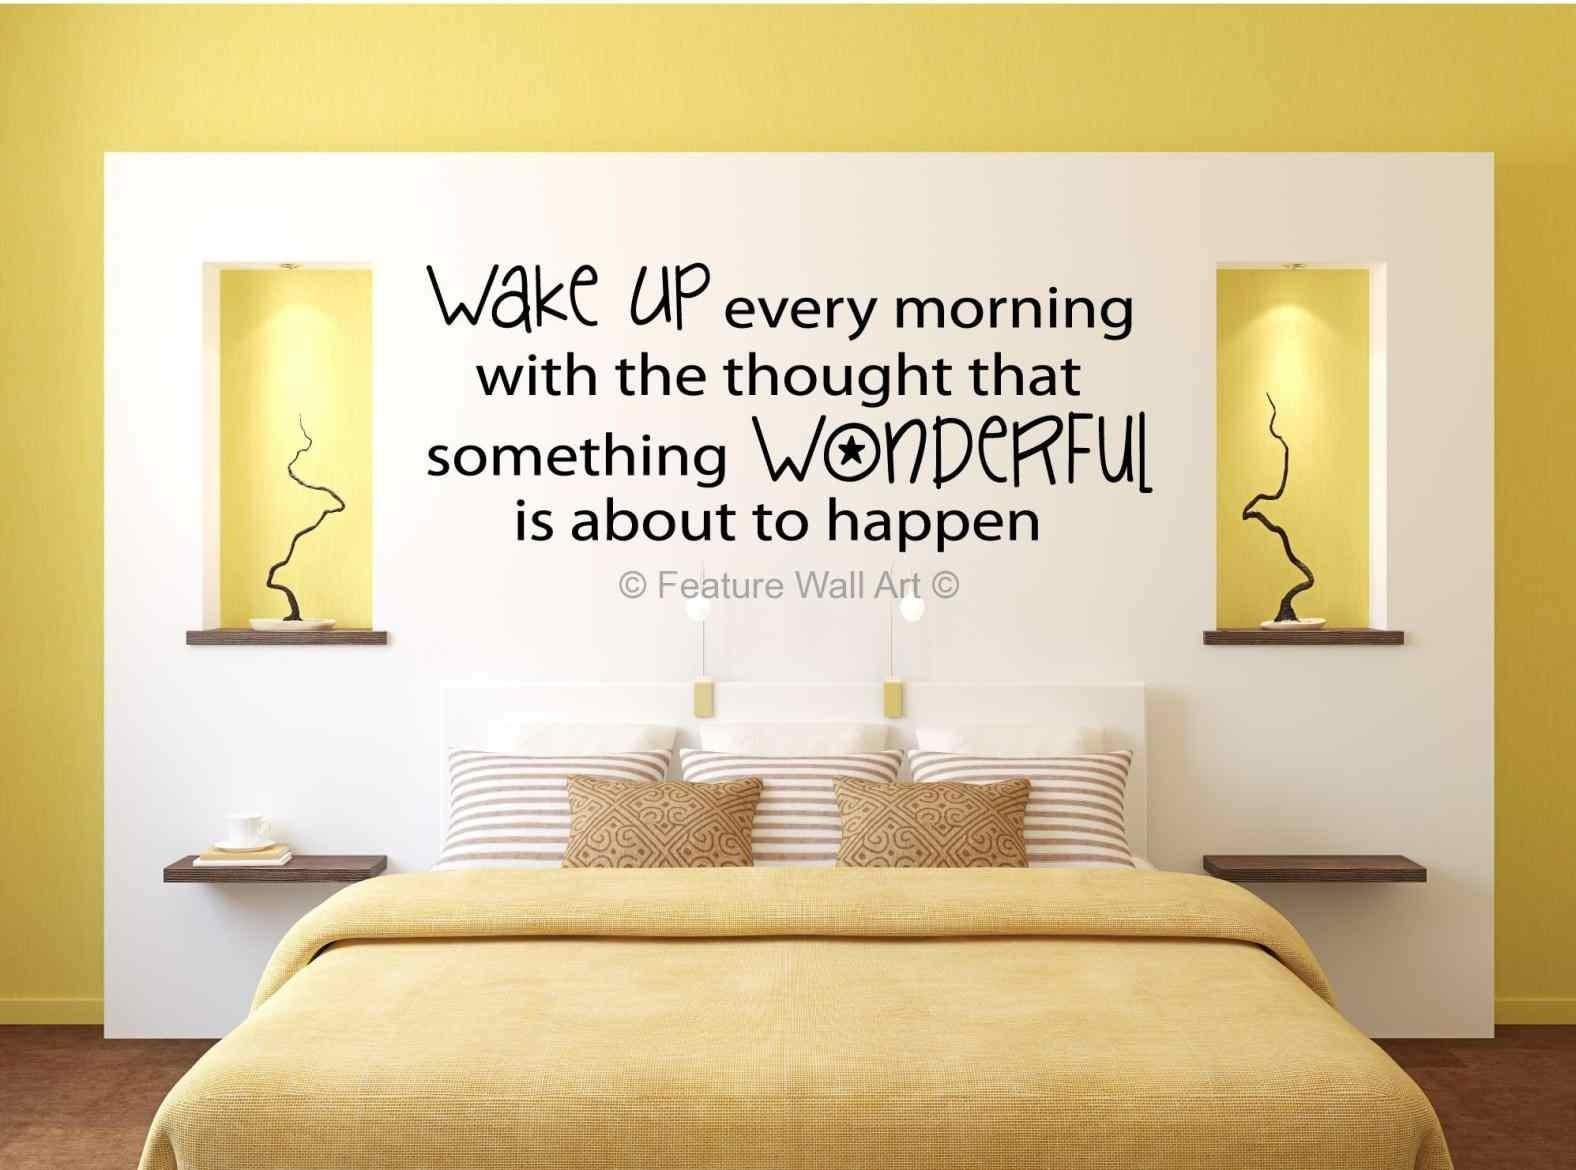 Tumblr Rooms With Quotes On Walls | Datenlabor In Coco Chanel Wall Decals (View 9 of 20)